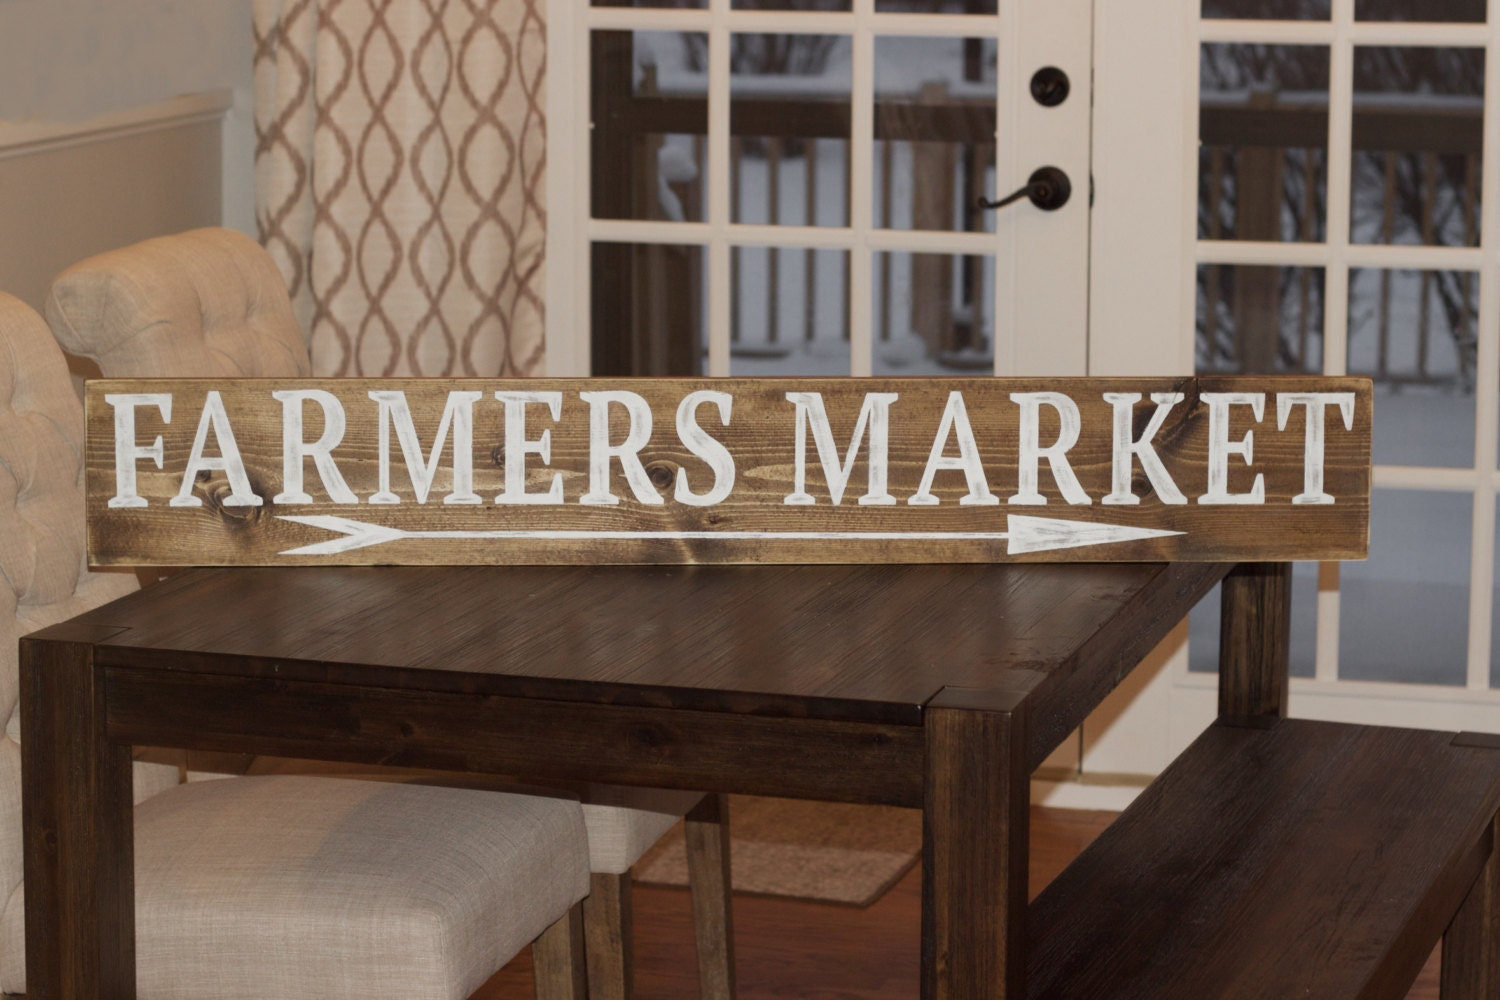 Farmers Market Sign Kitchen Sign Wooden Farmers Market Sign